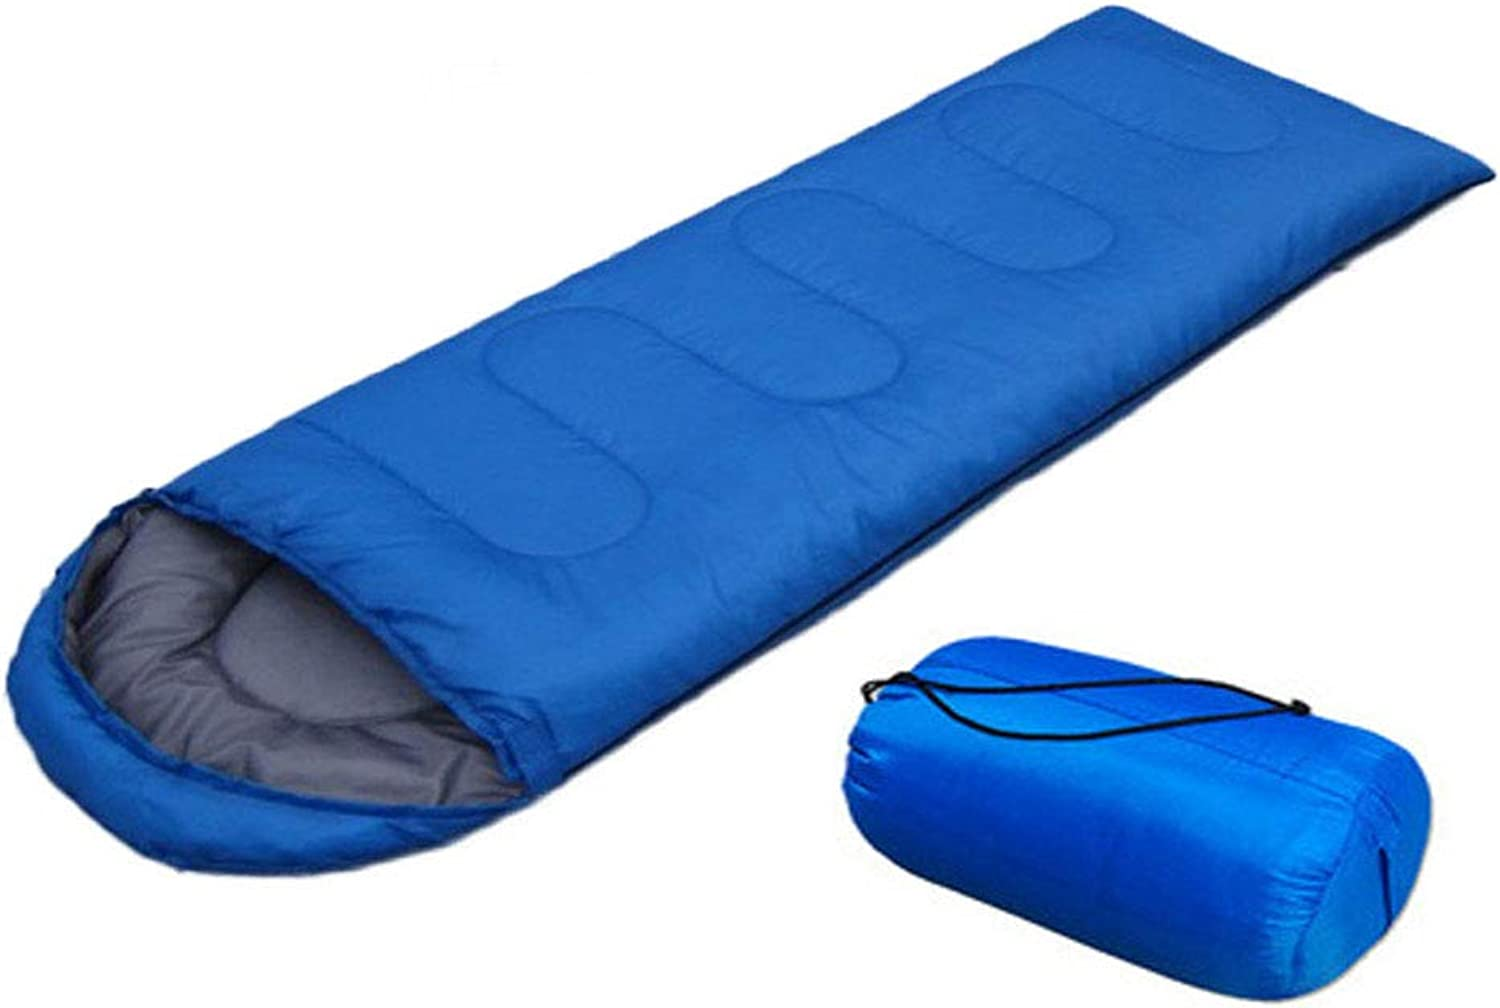 Camping sleeping bag,Envelope Hooded sleeping bag,Three Seasons(Spring, Summer, Fall),Five Specifications, blueee,Affordable and Durable